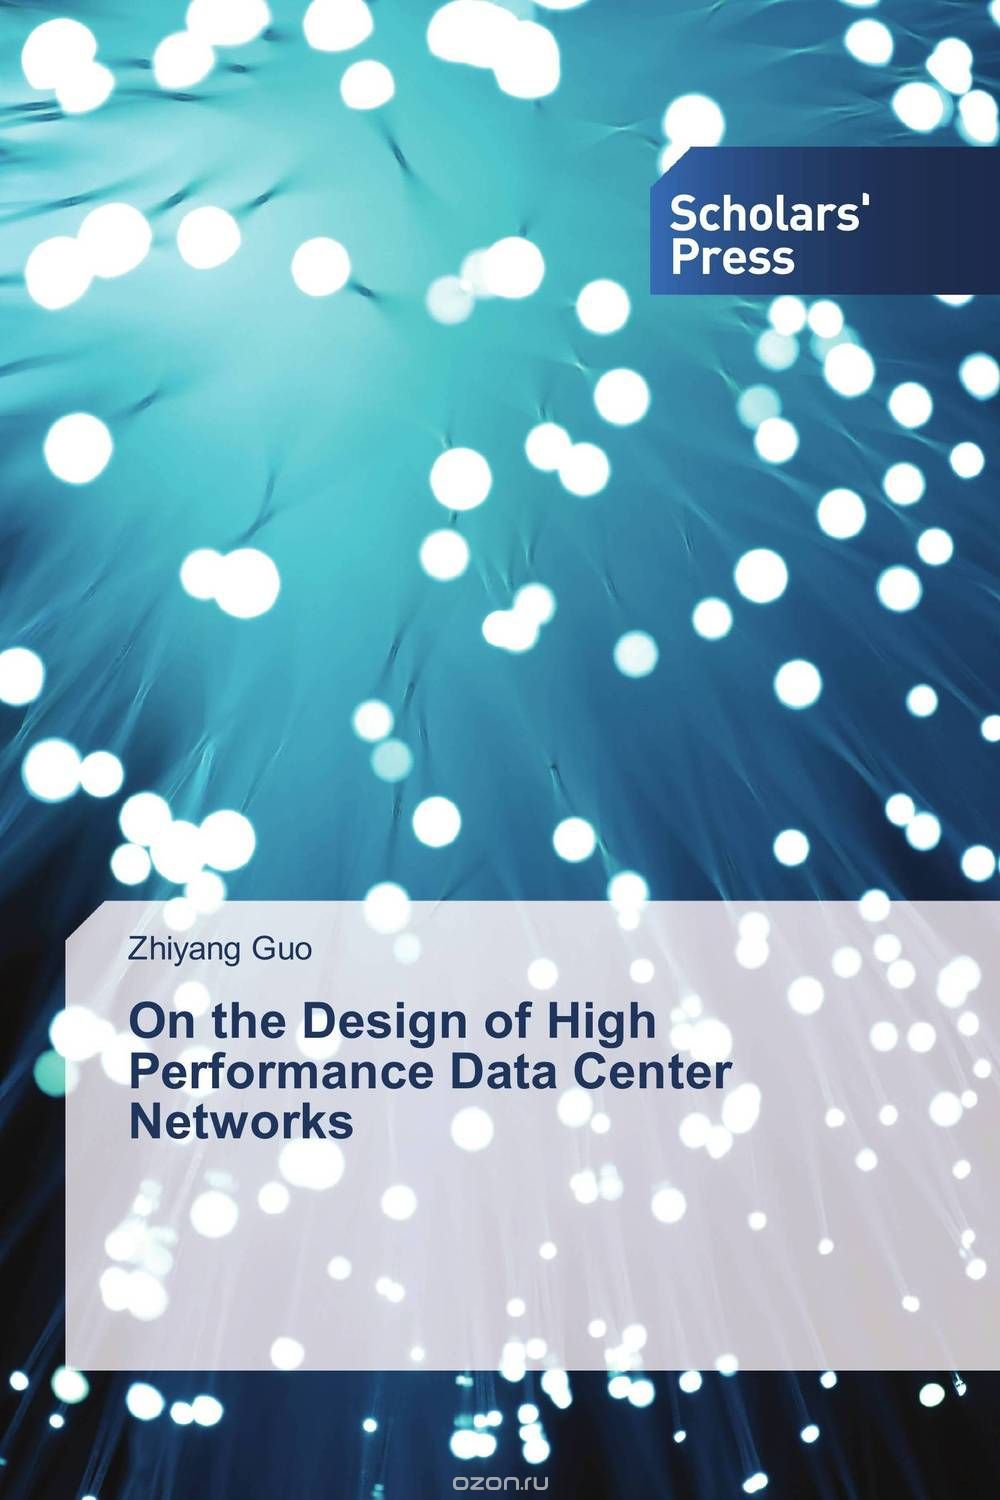 On the Design of High Performance Data Center Networks